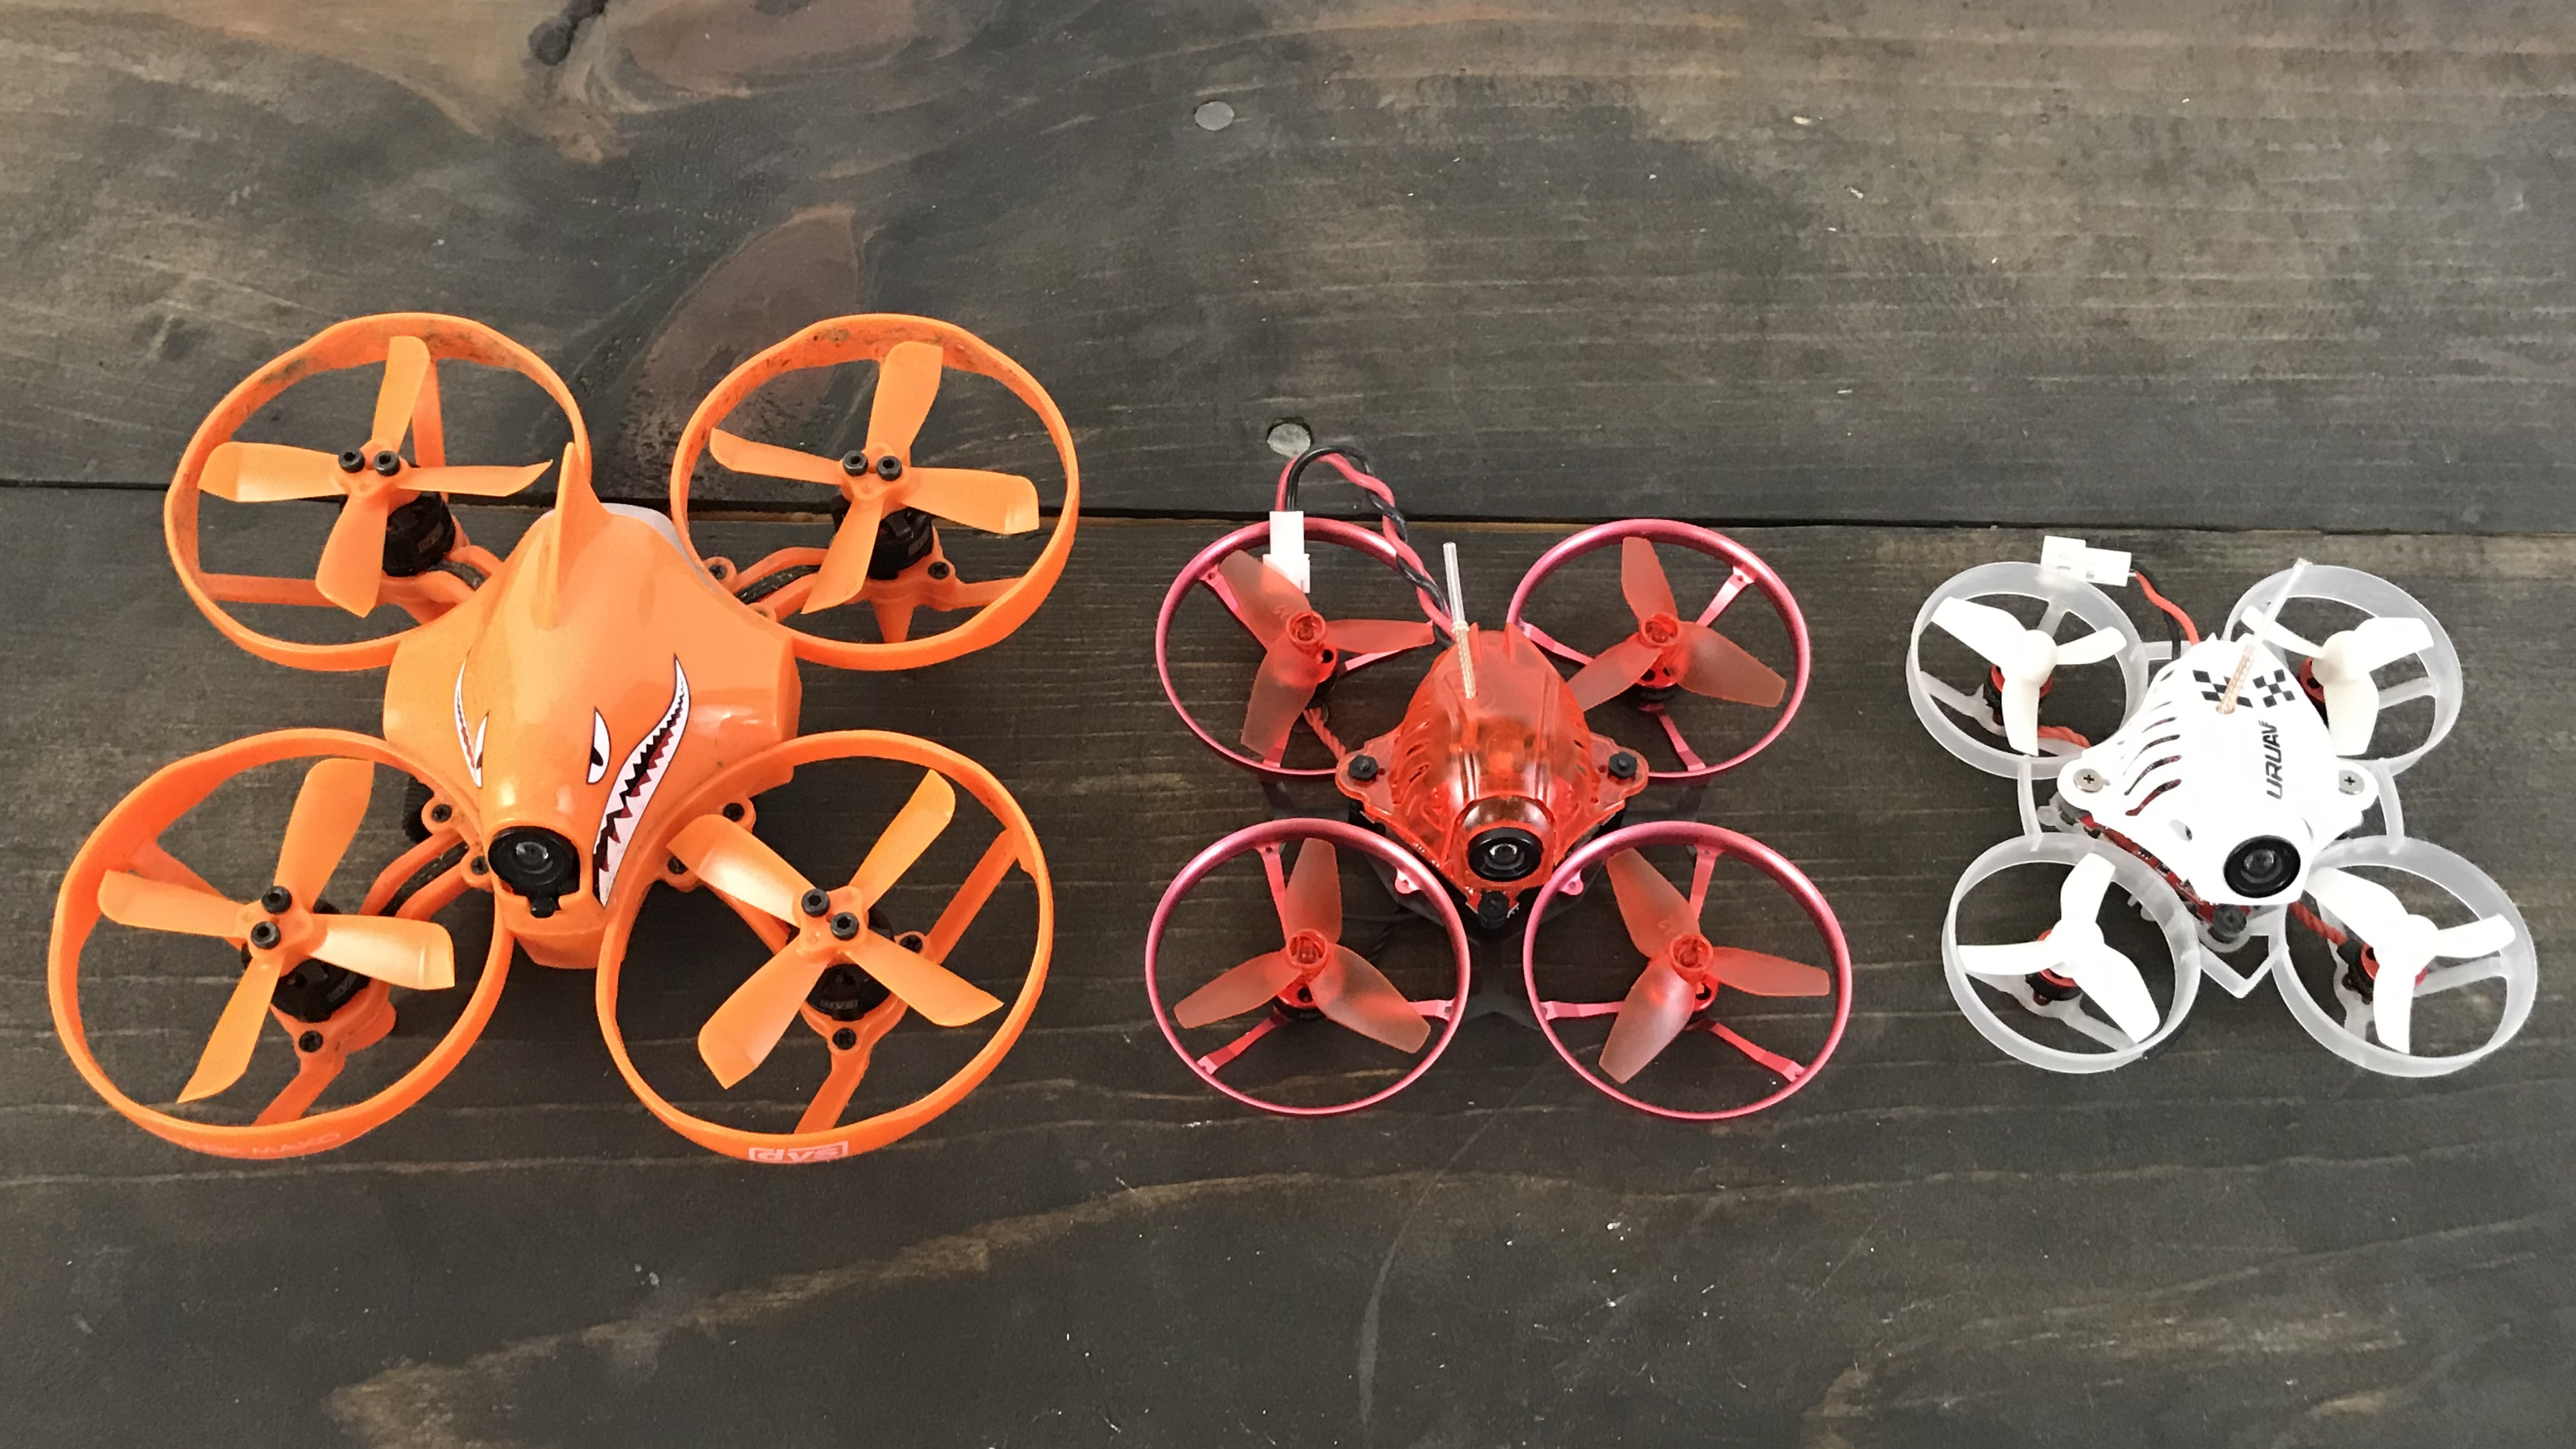 Happymodel Snapper 7 first look: Blast to fly